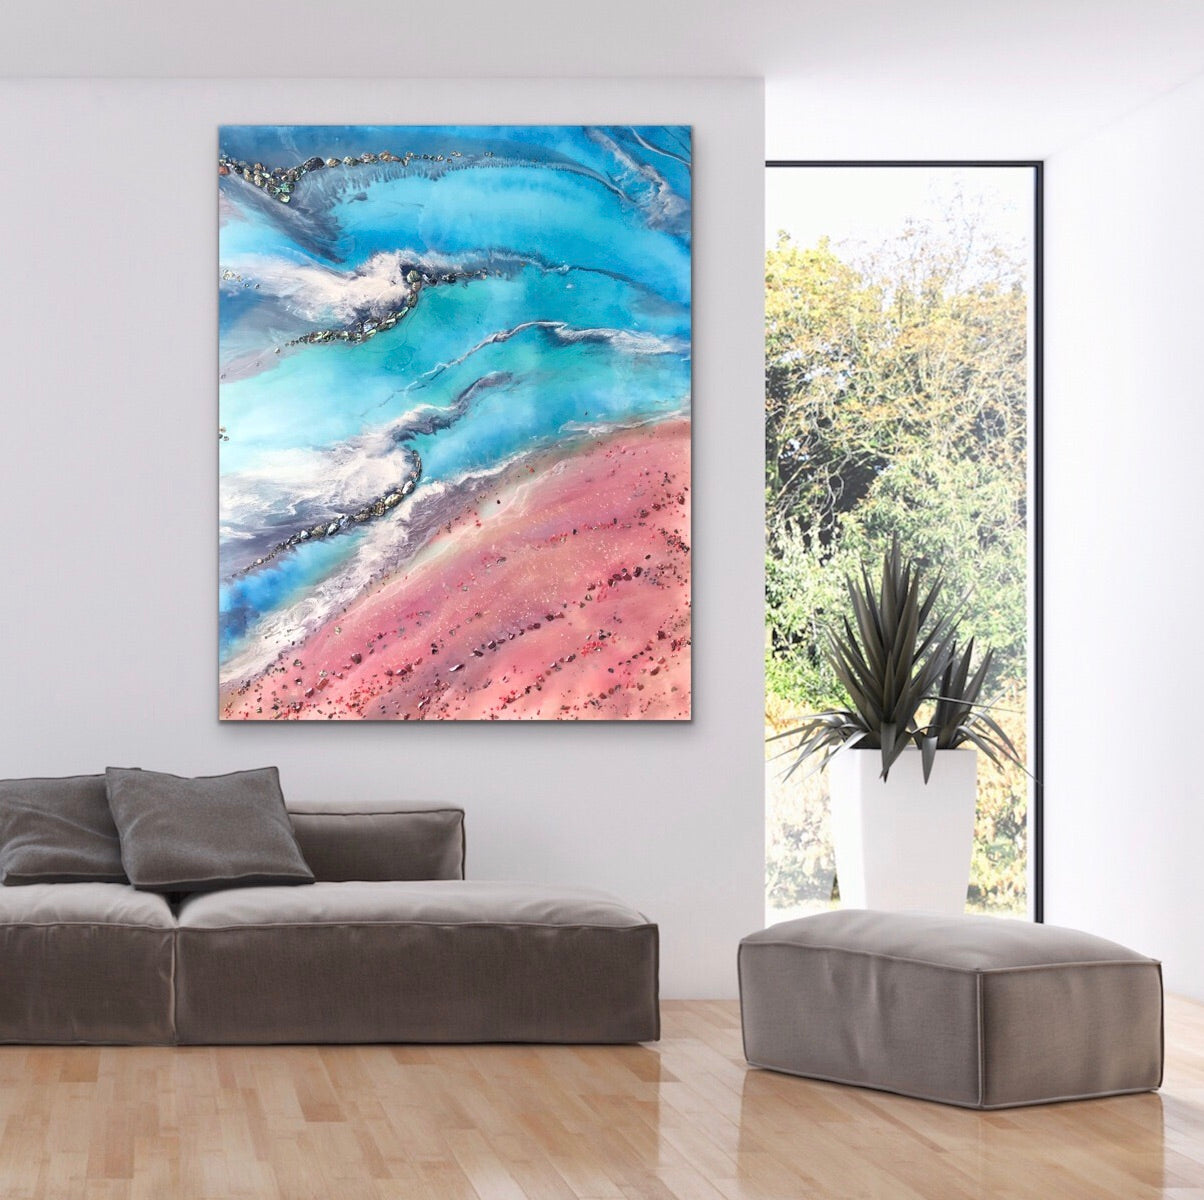 Teal and Pink Ocean Painting. Abstract Seascape Resin Artwork 3 Azure Coastline. Ocean. Original with Abalone Shells Coral 120x150cm.